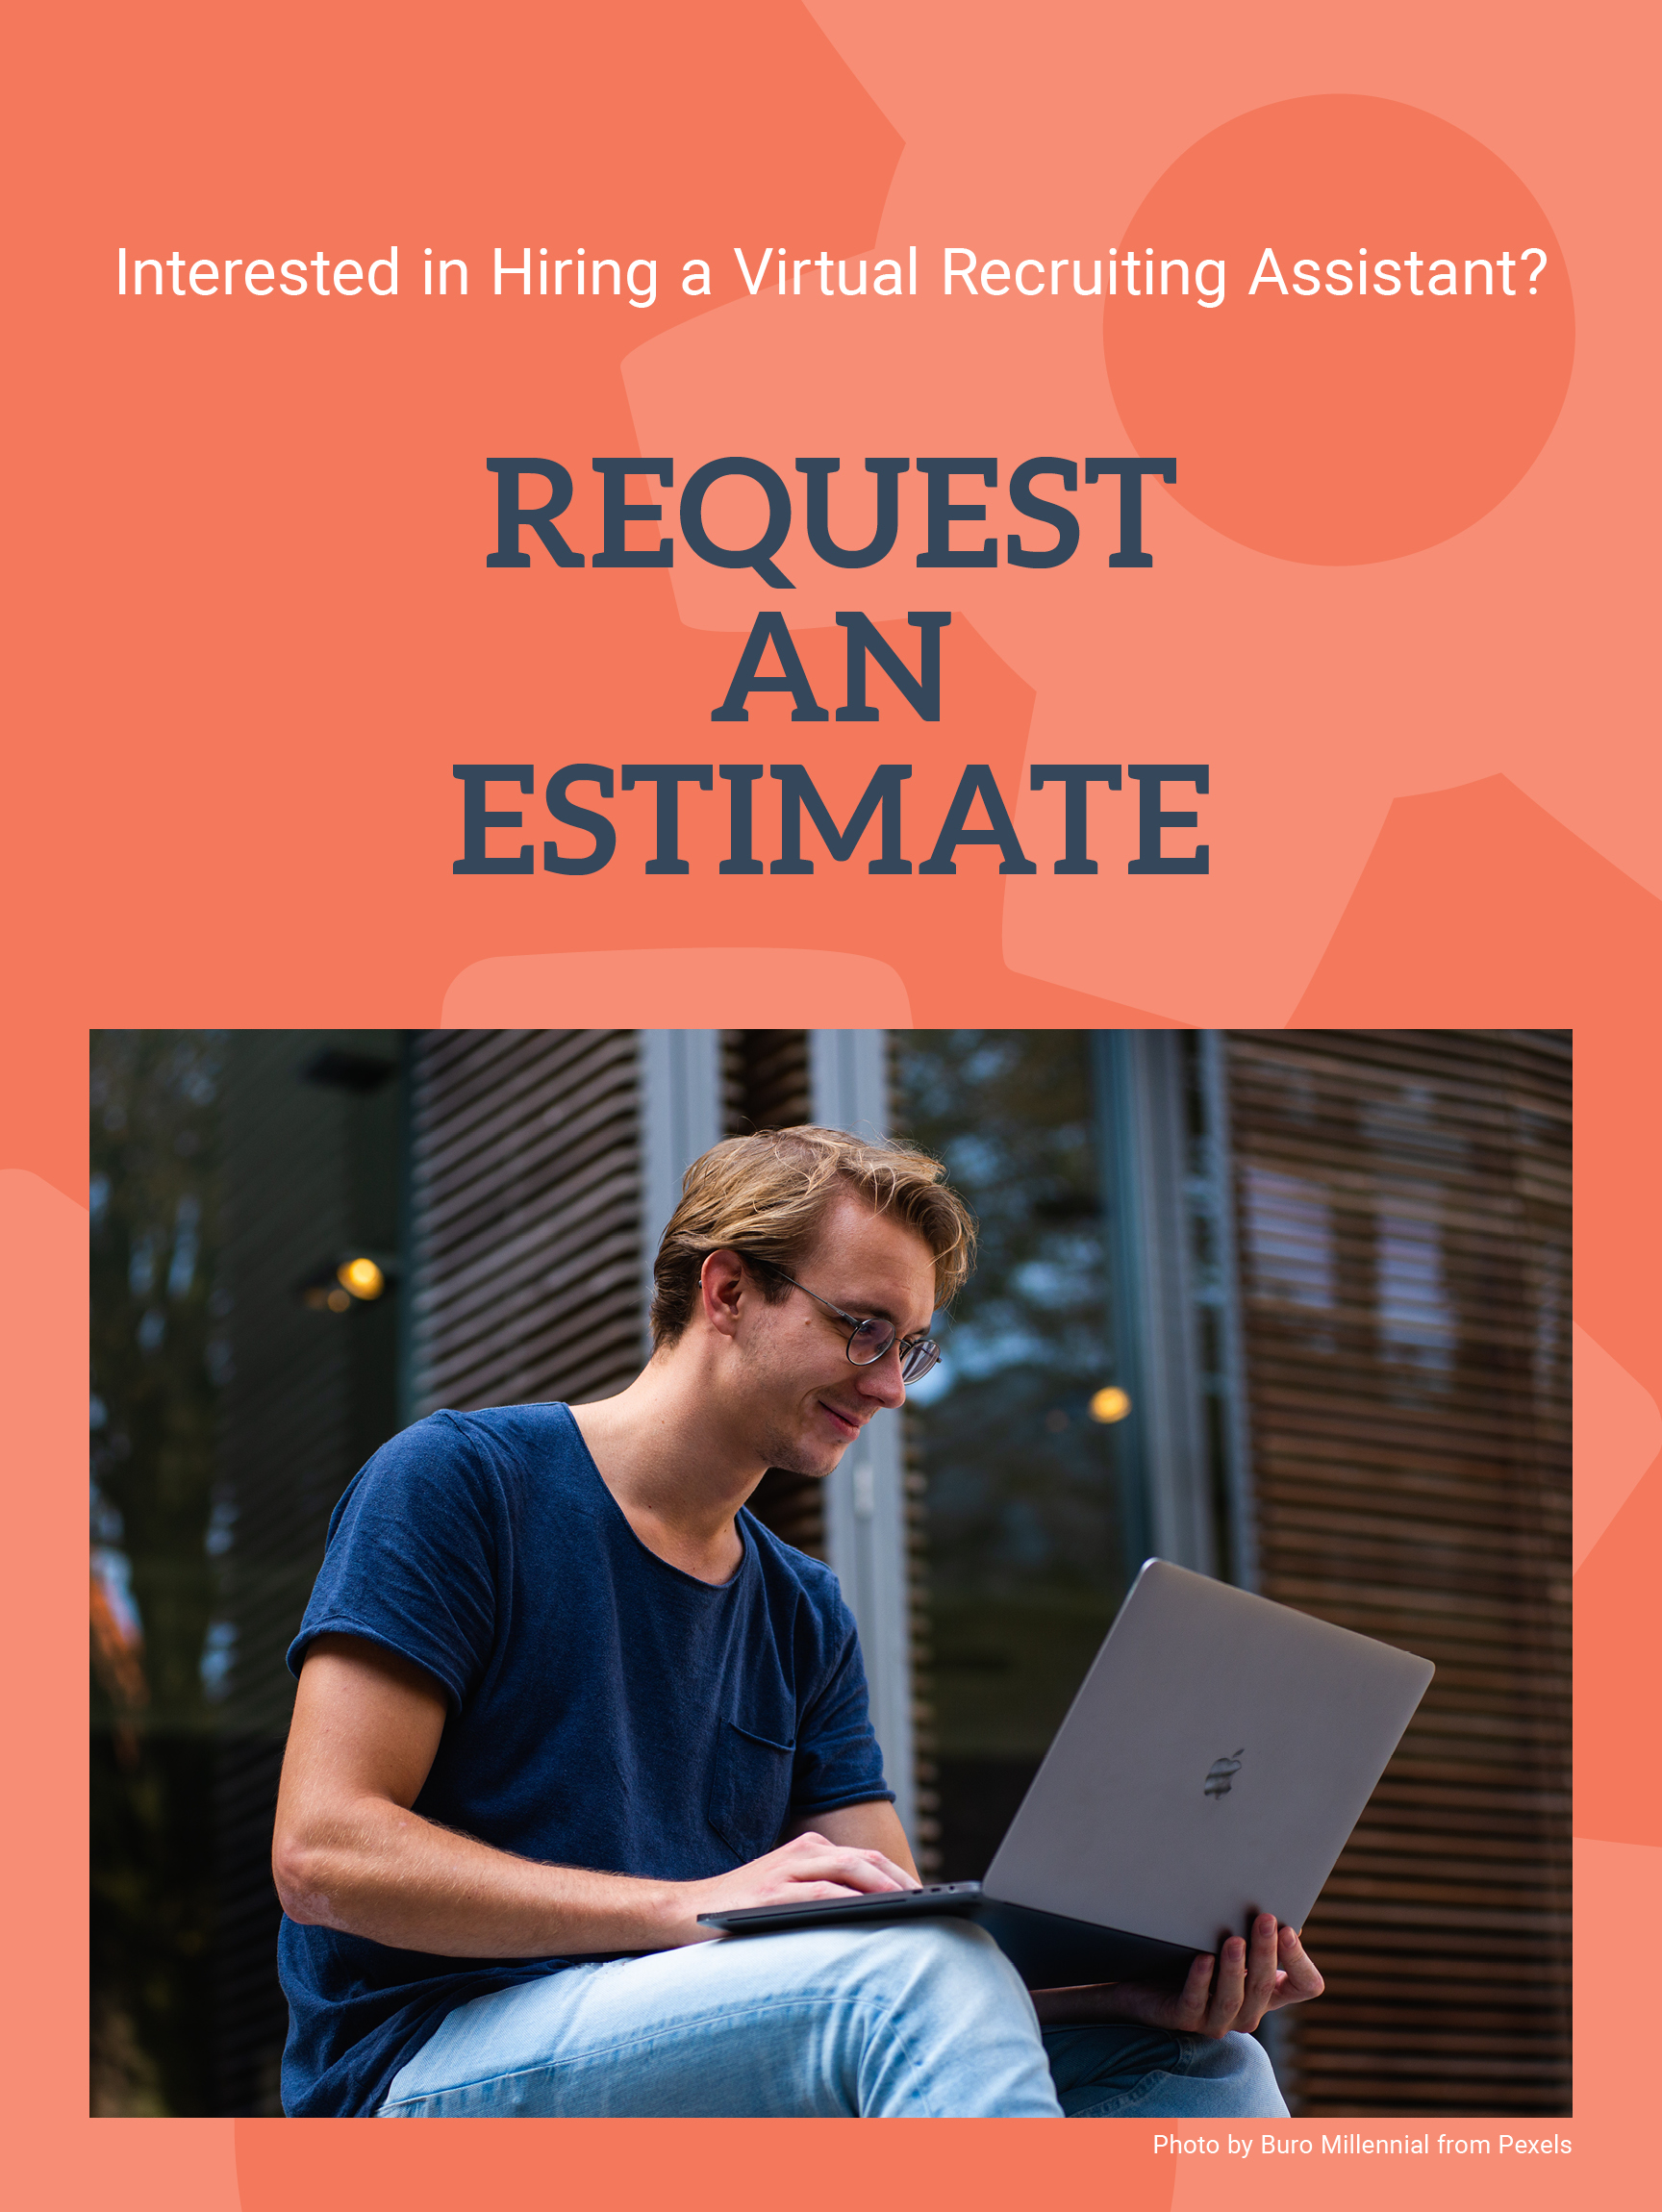 Request an Estimate Remote Recruiting Assistants